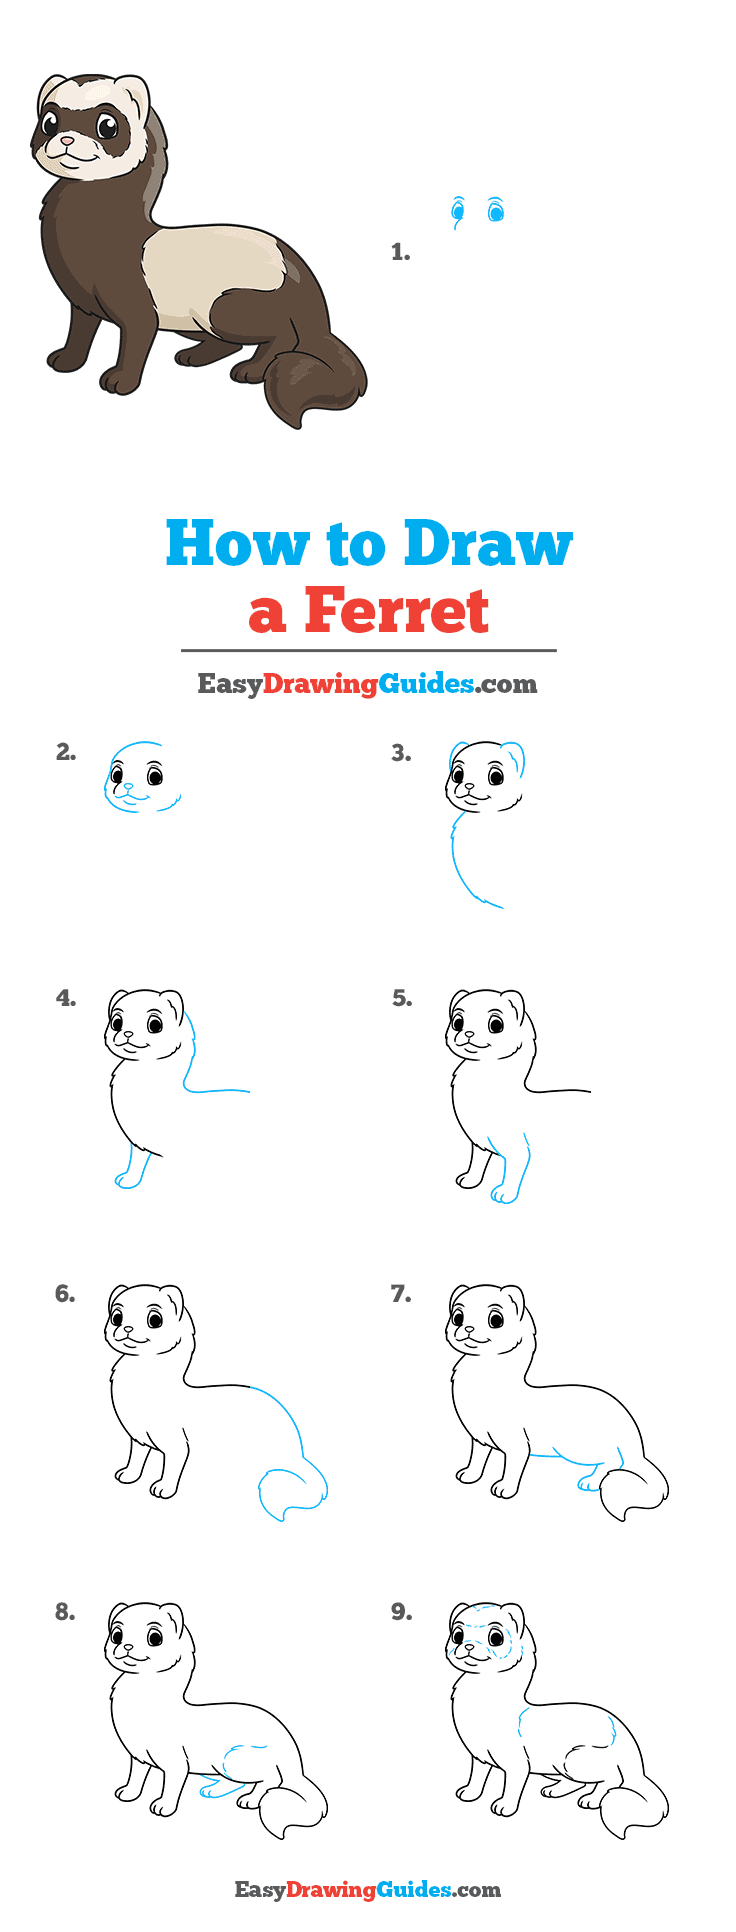 How to Draw a Ferret Step by Step Tutorial Image